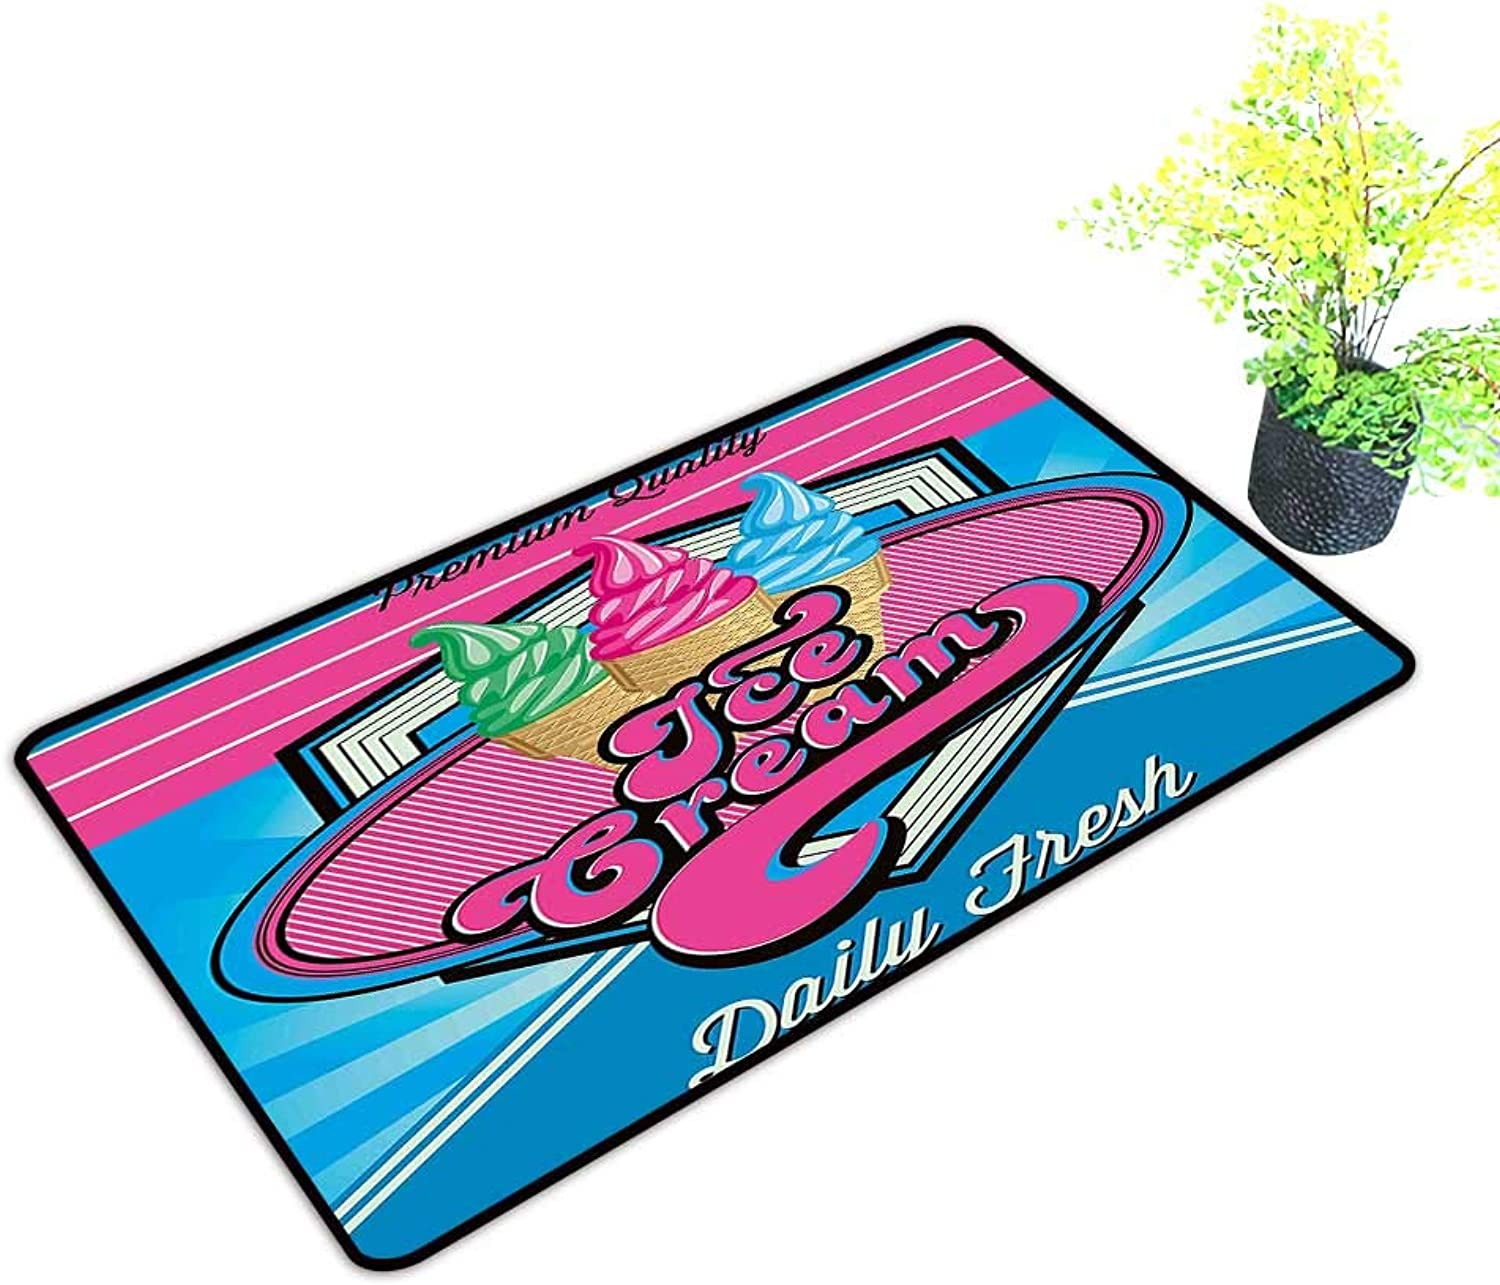 Gmnalahome Front Welcome Entrance Door Mats Background with Ice Cream Illustration for Home Print bluee and Hot Pink Home Decor Rug Mats W39 x H19 INCH